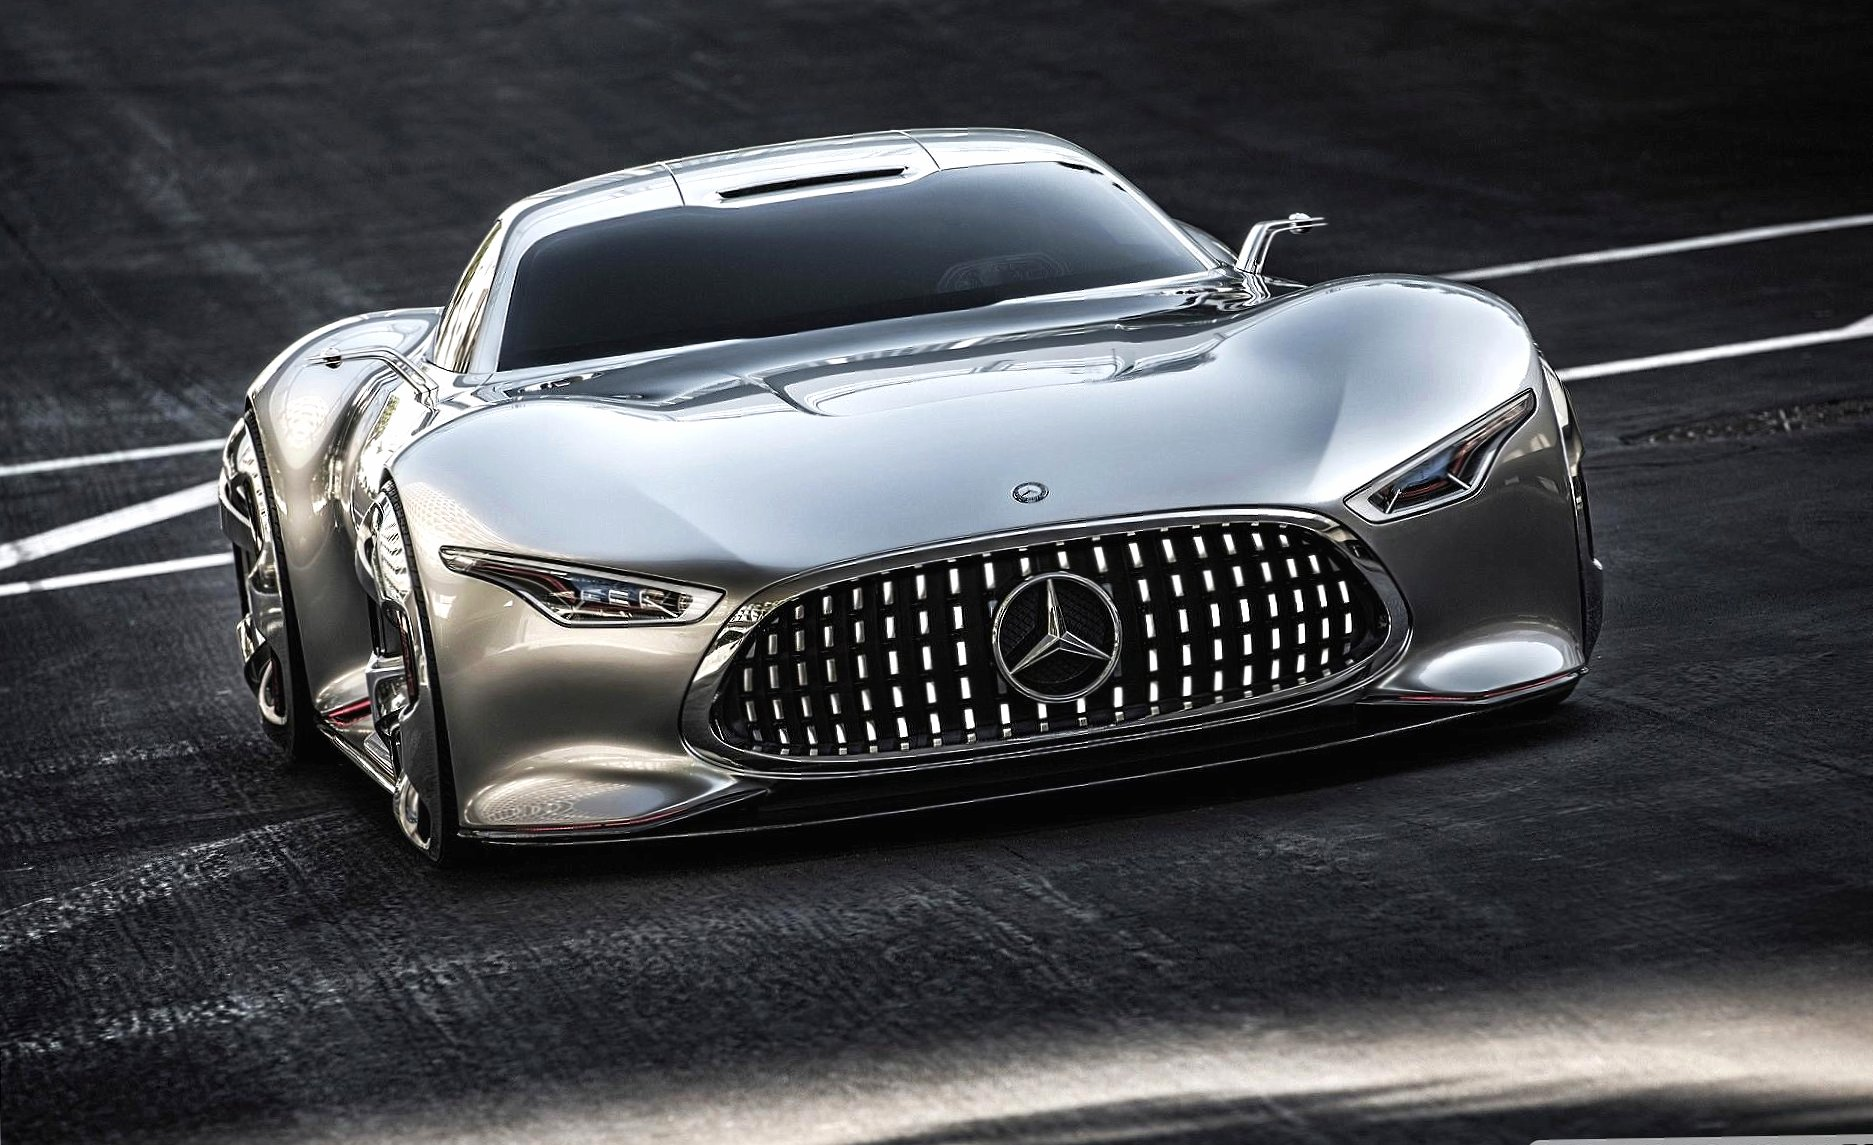 Mercedes benz amg vision gran turismo concept wallpapers HD quality